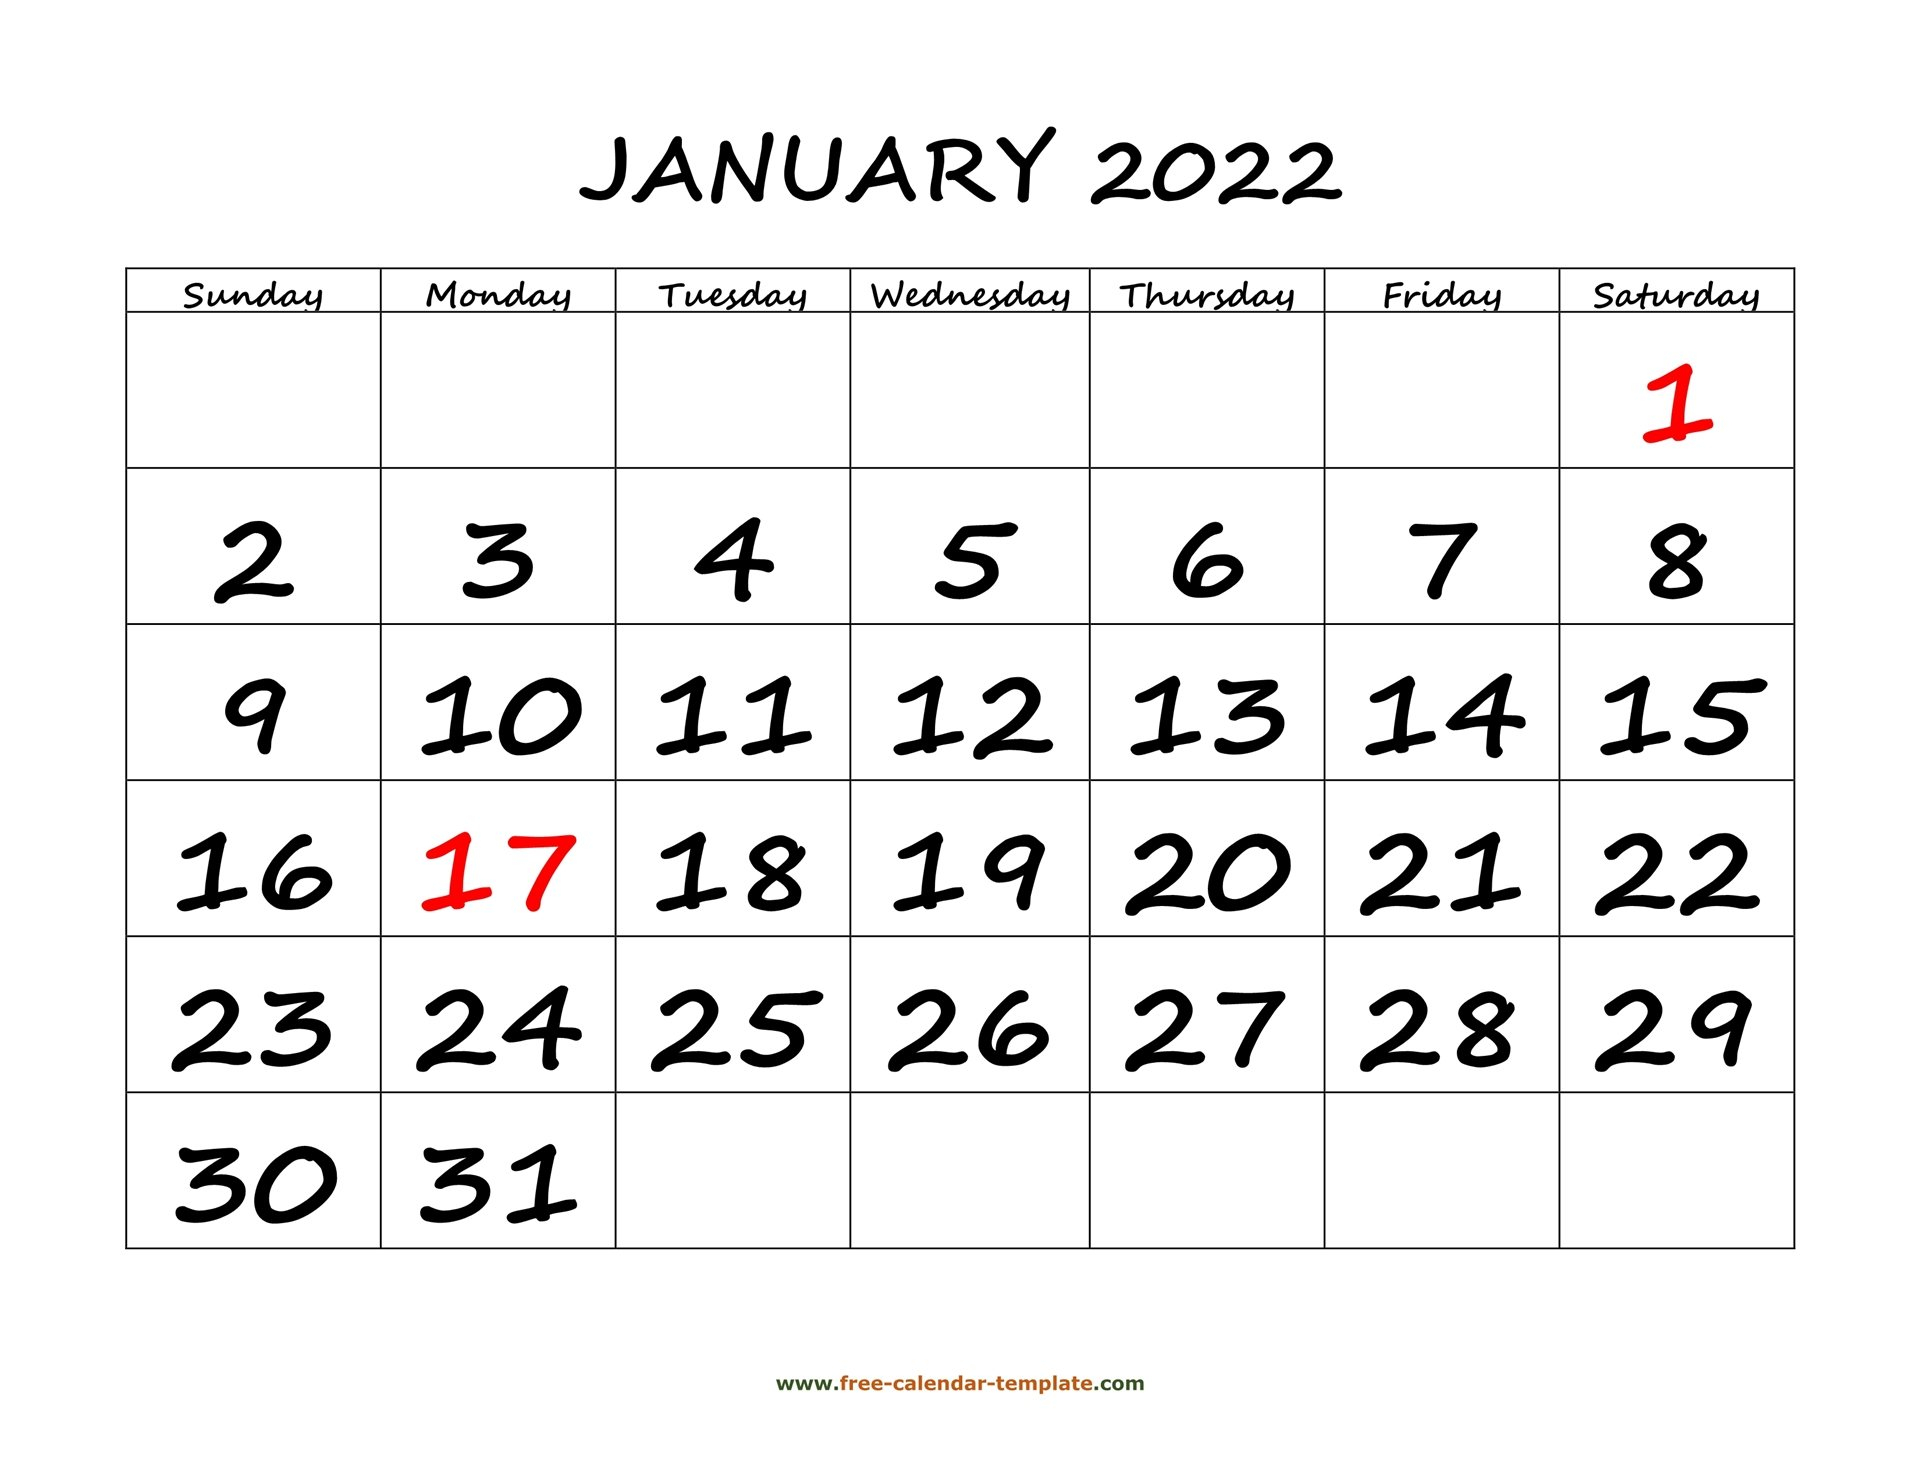 Printable Monthly Calendar 2022 | Free-Calendar-Template with regard to Printable Day Planner 2022 Image